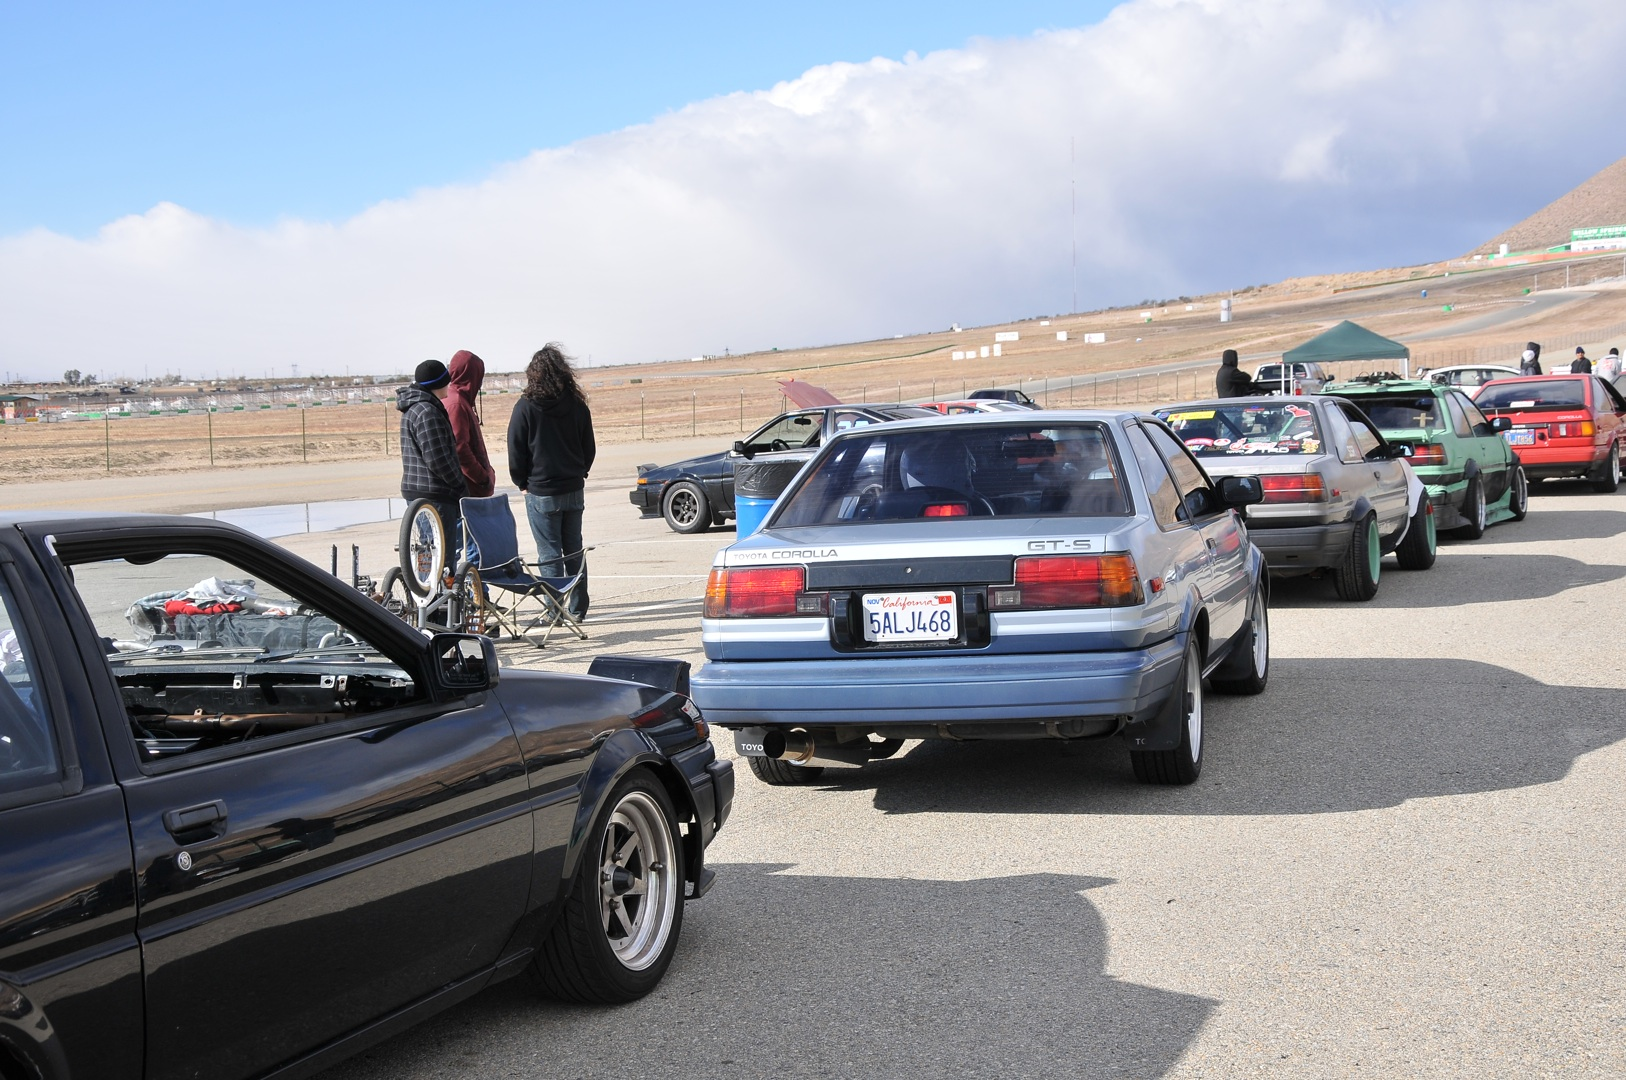 AE86, rear coupe, grid, willowsprings